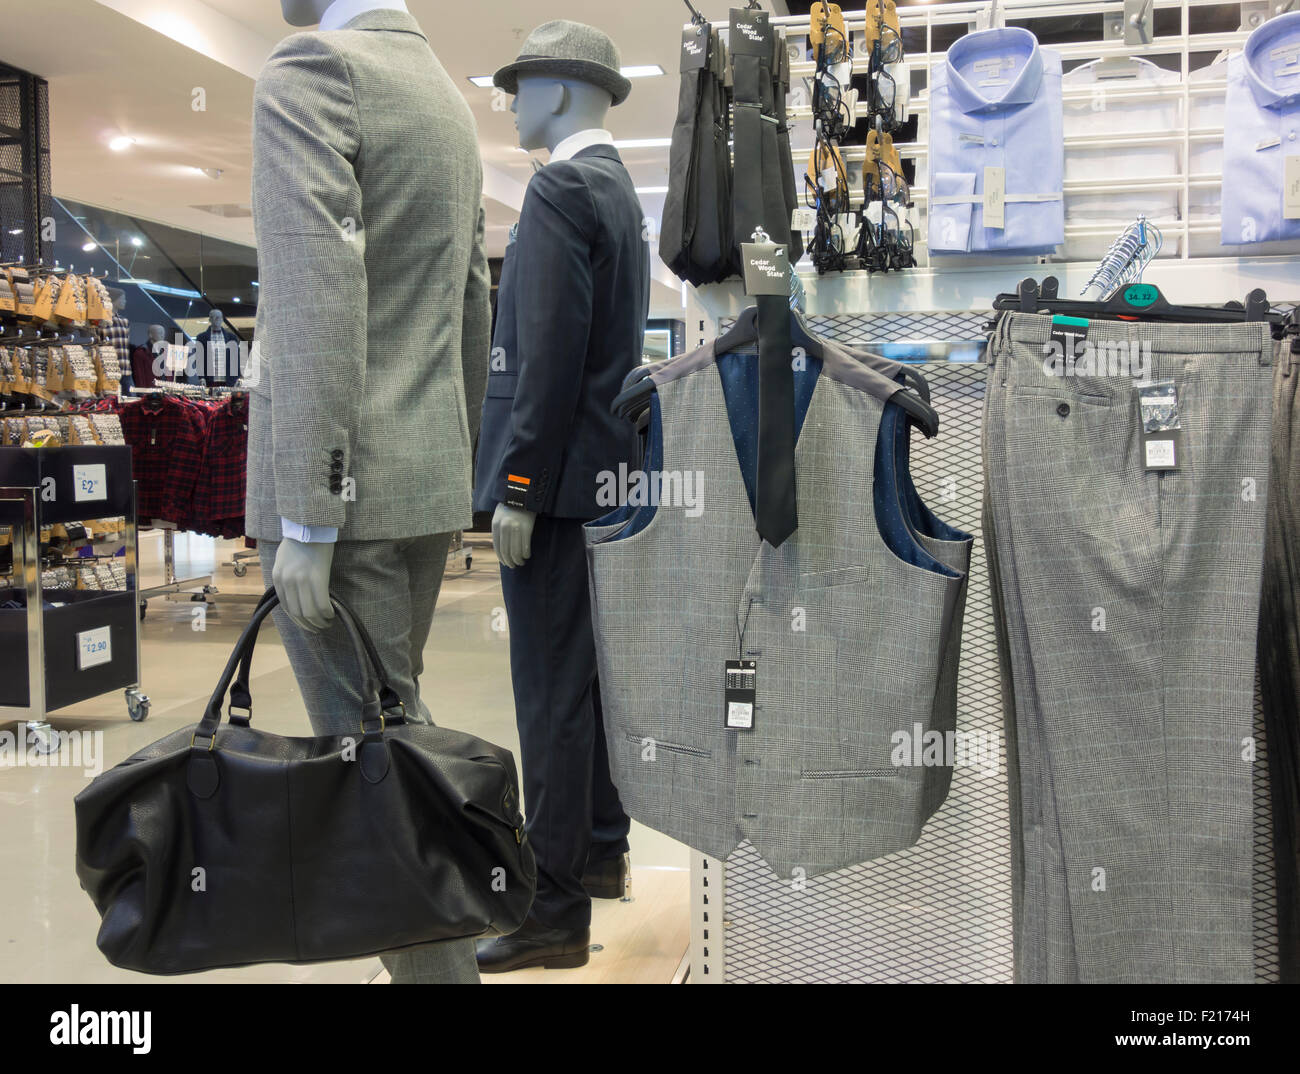 Suits and waistcoats in Primark store. England, UK - Stock Image